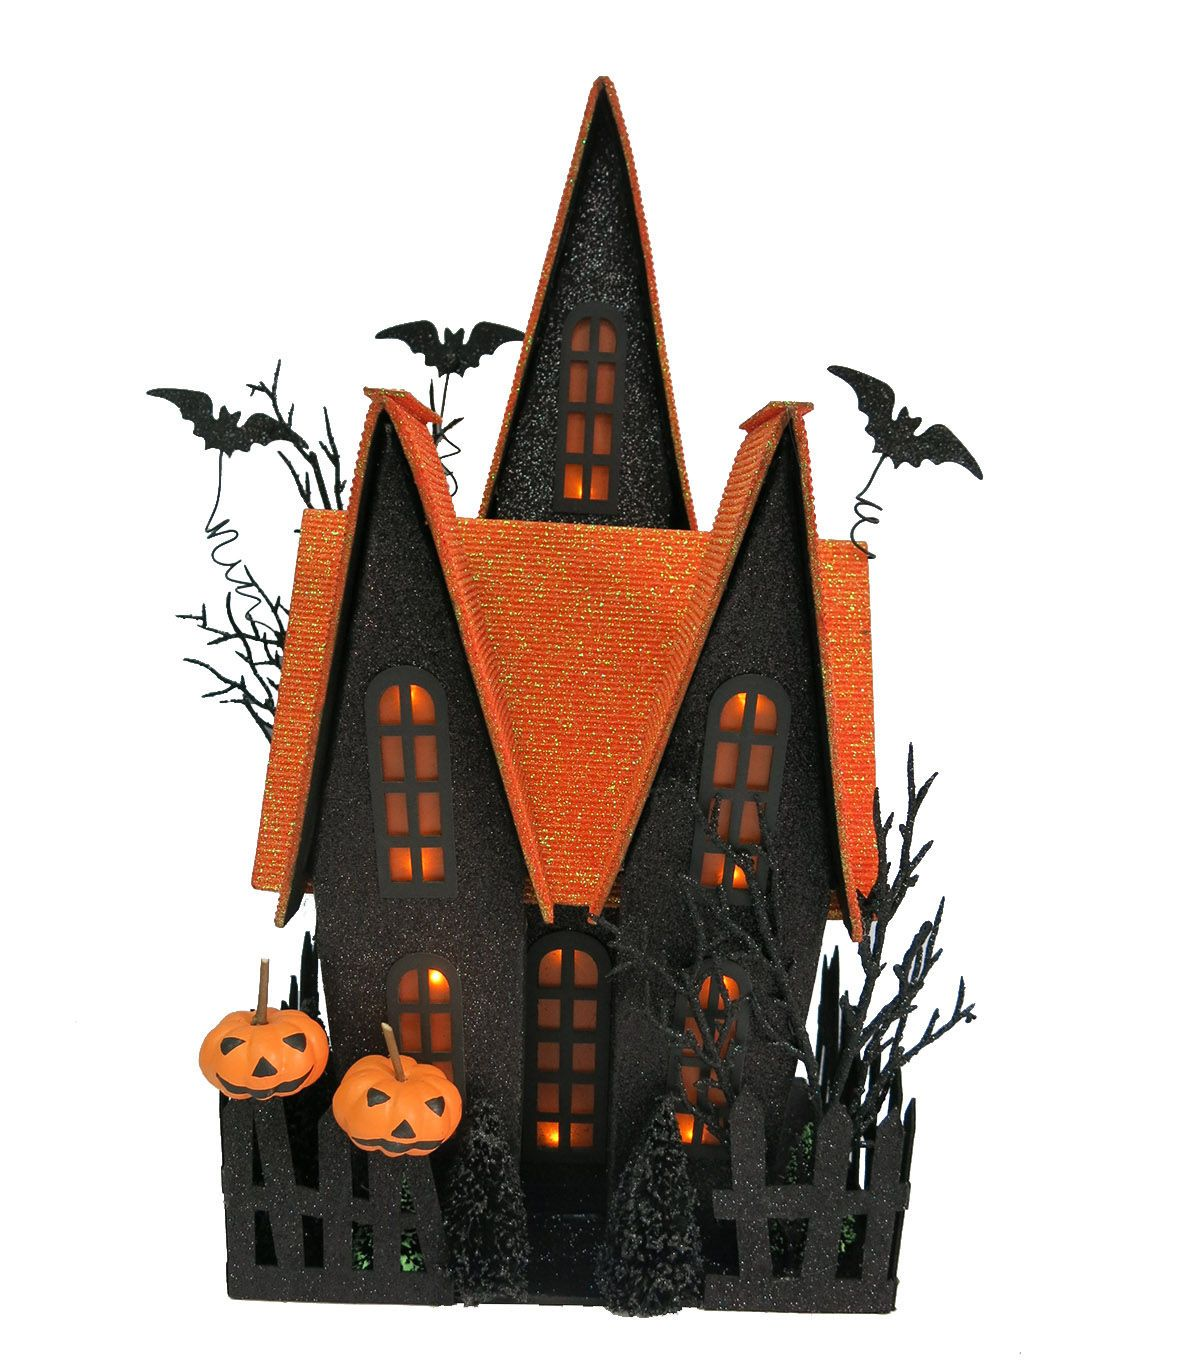 Ring in Halloween this season with eye-catching home decor accents - Halloween House Decoration